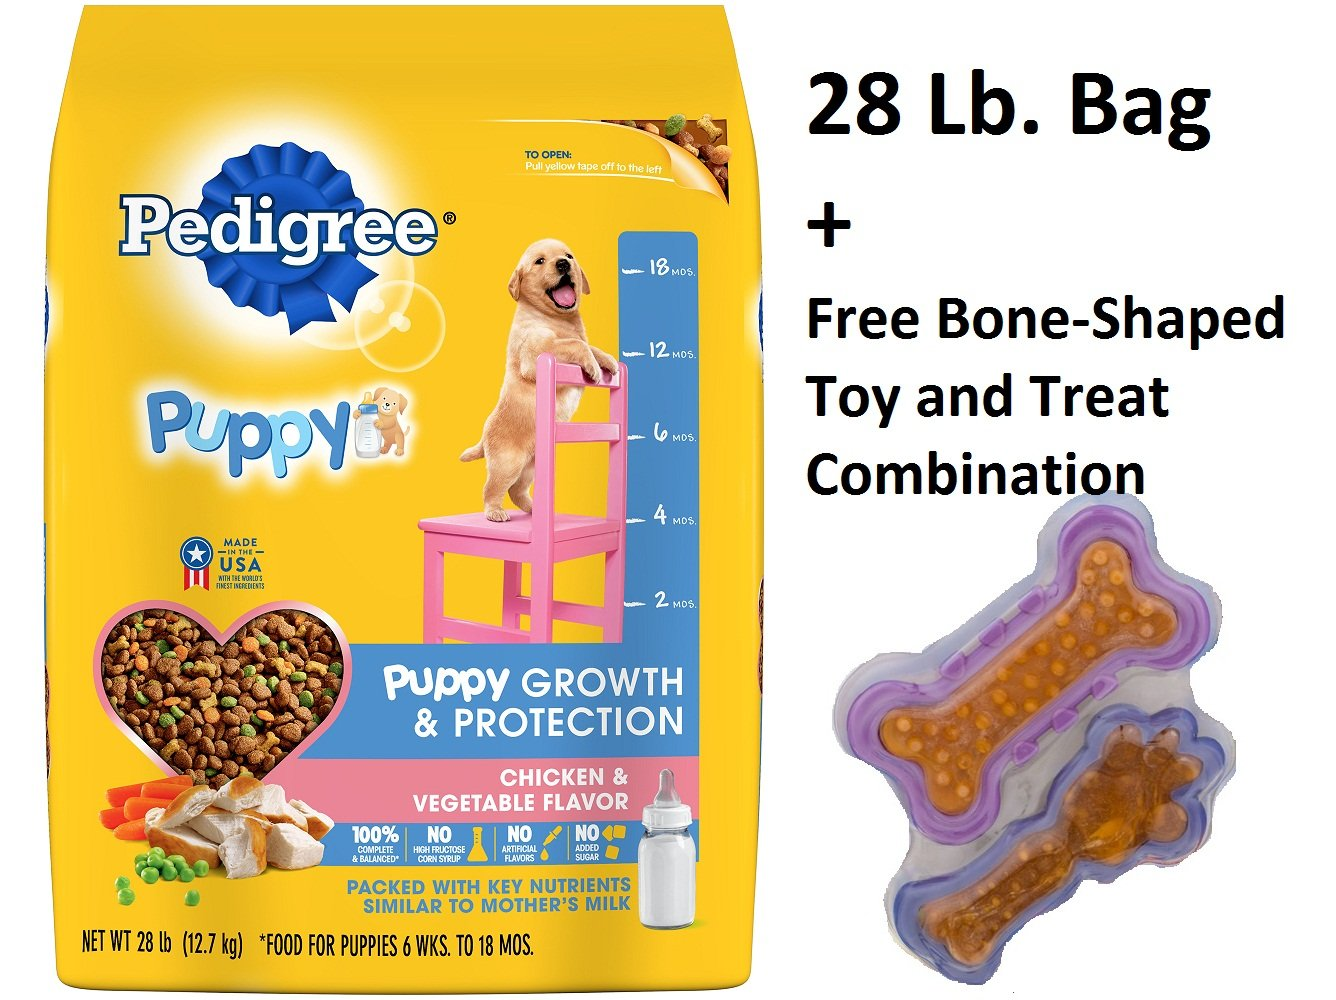 PEDIGREE Puppy Growth & Protection Chicken & Vegetable Flavor Dry Dog Food 28 Pounds (4 Pack + Free Toy) by Pedigree (Image #1)